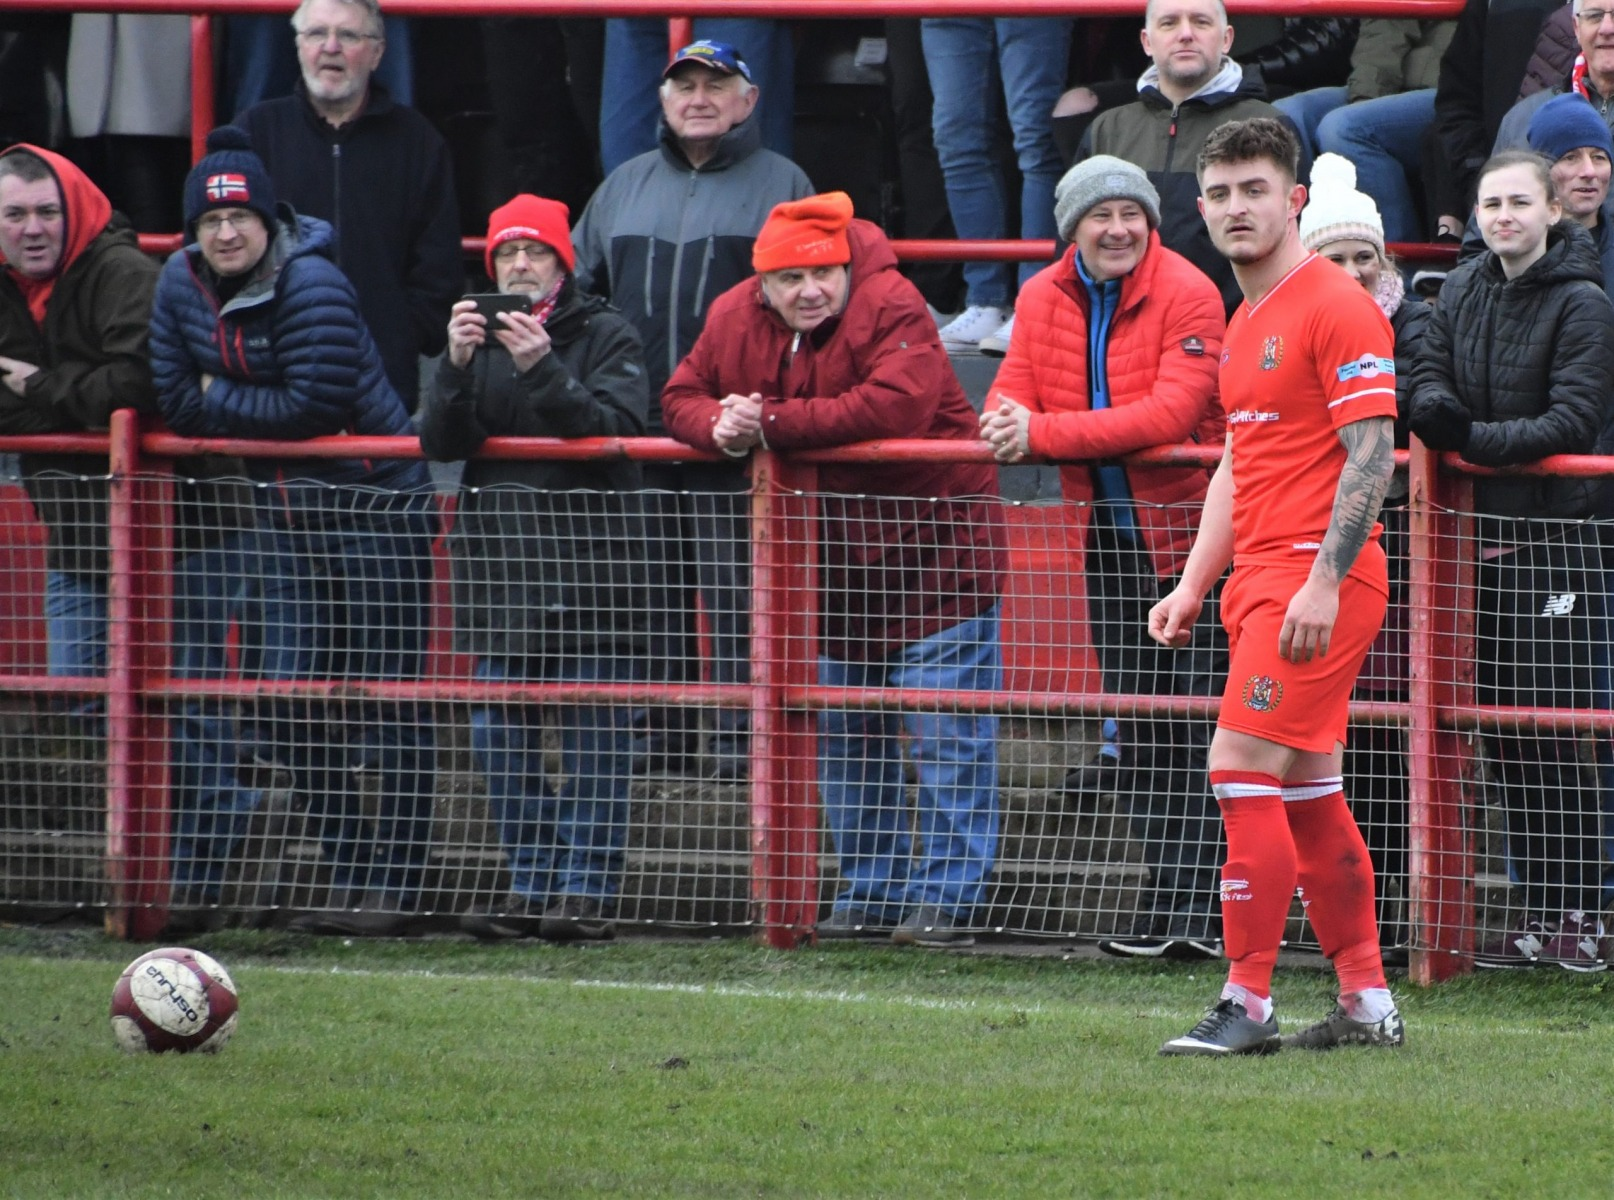 ThebReds-first-goal-came-from-Dav-Symingtons-free-kick-Ben-Challis-scaled